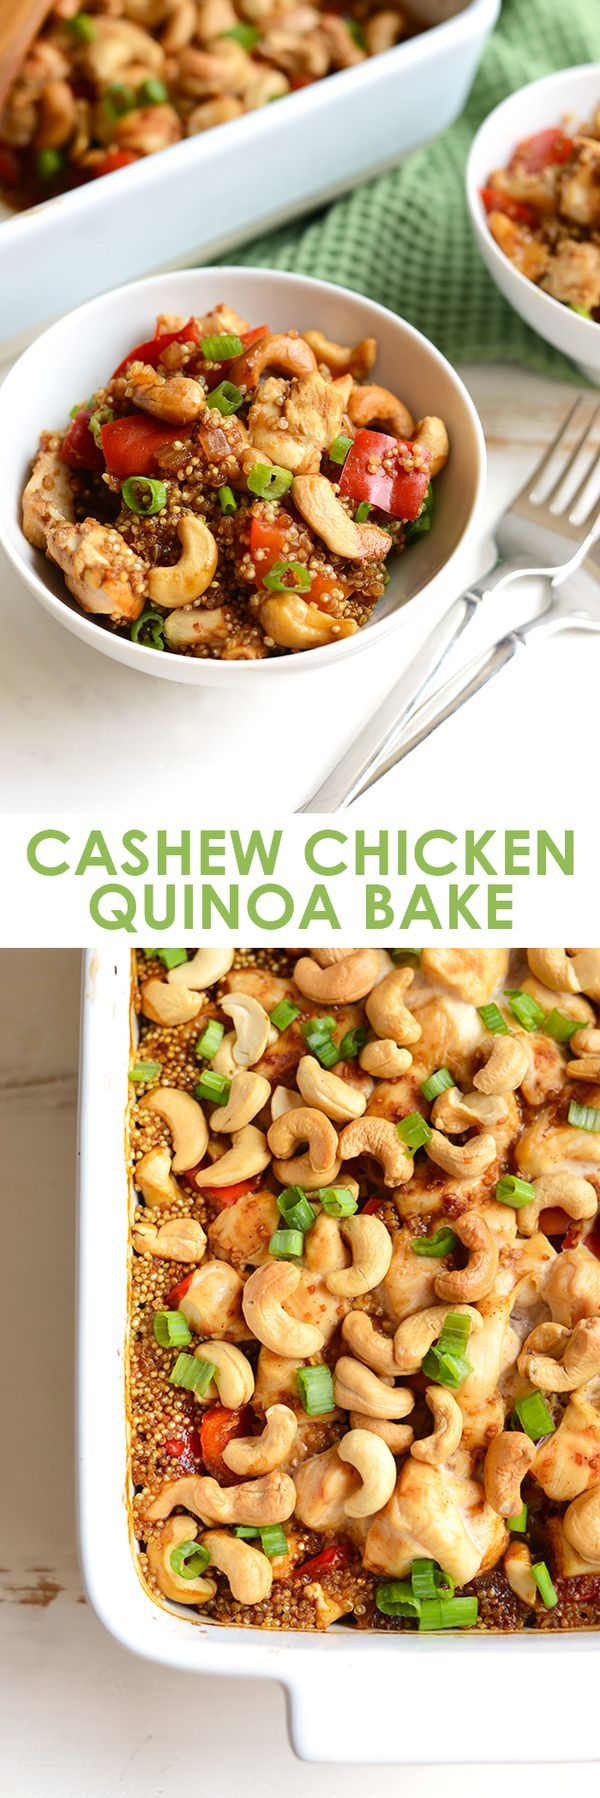 Make this Cashew Chicken Quinoa Bake for a high-protein, one-dish meal that the whole family will love! Meal prep at its finest!